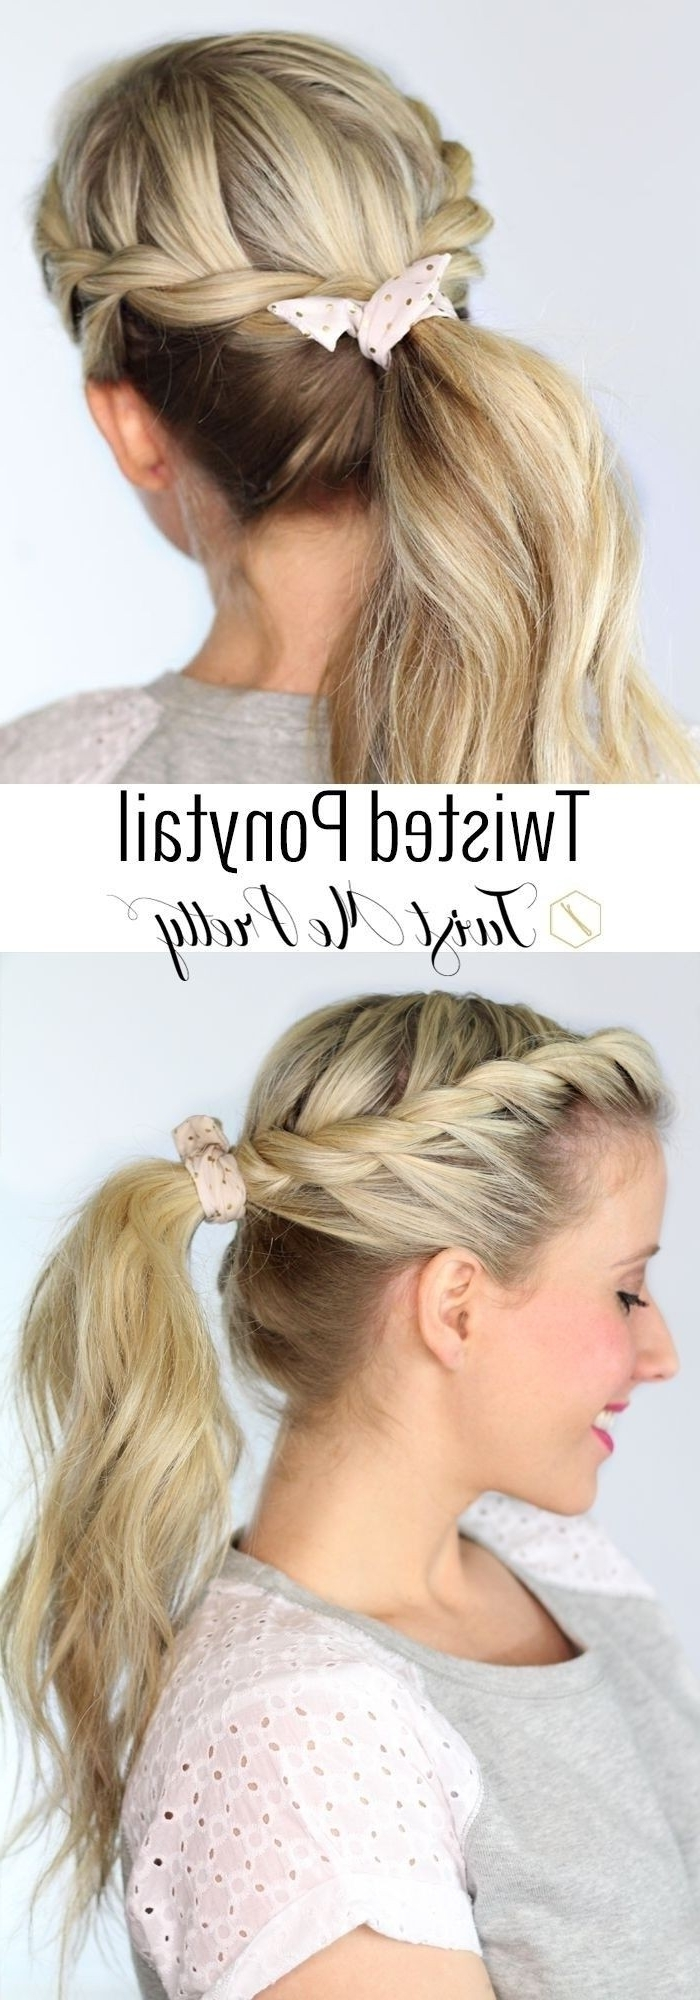 Latest Straight High Ponytail Hairstyles With A Twist Throughout 22 Great Ponytail Hairstyles For Girls – Pretty Designs (Gallery 14 of 20)